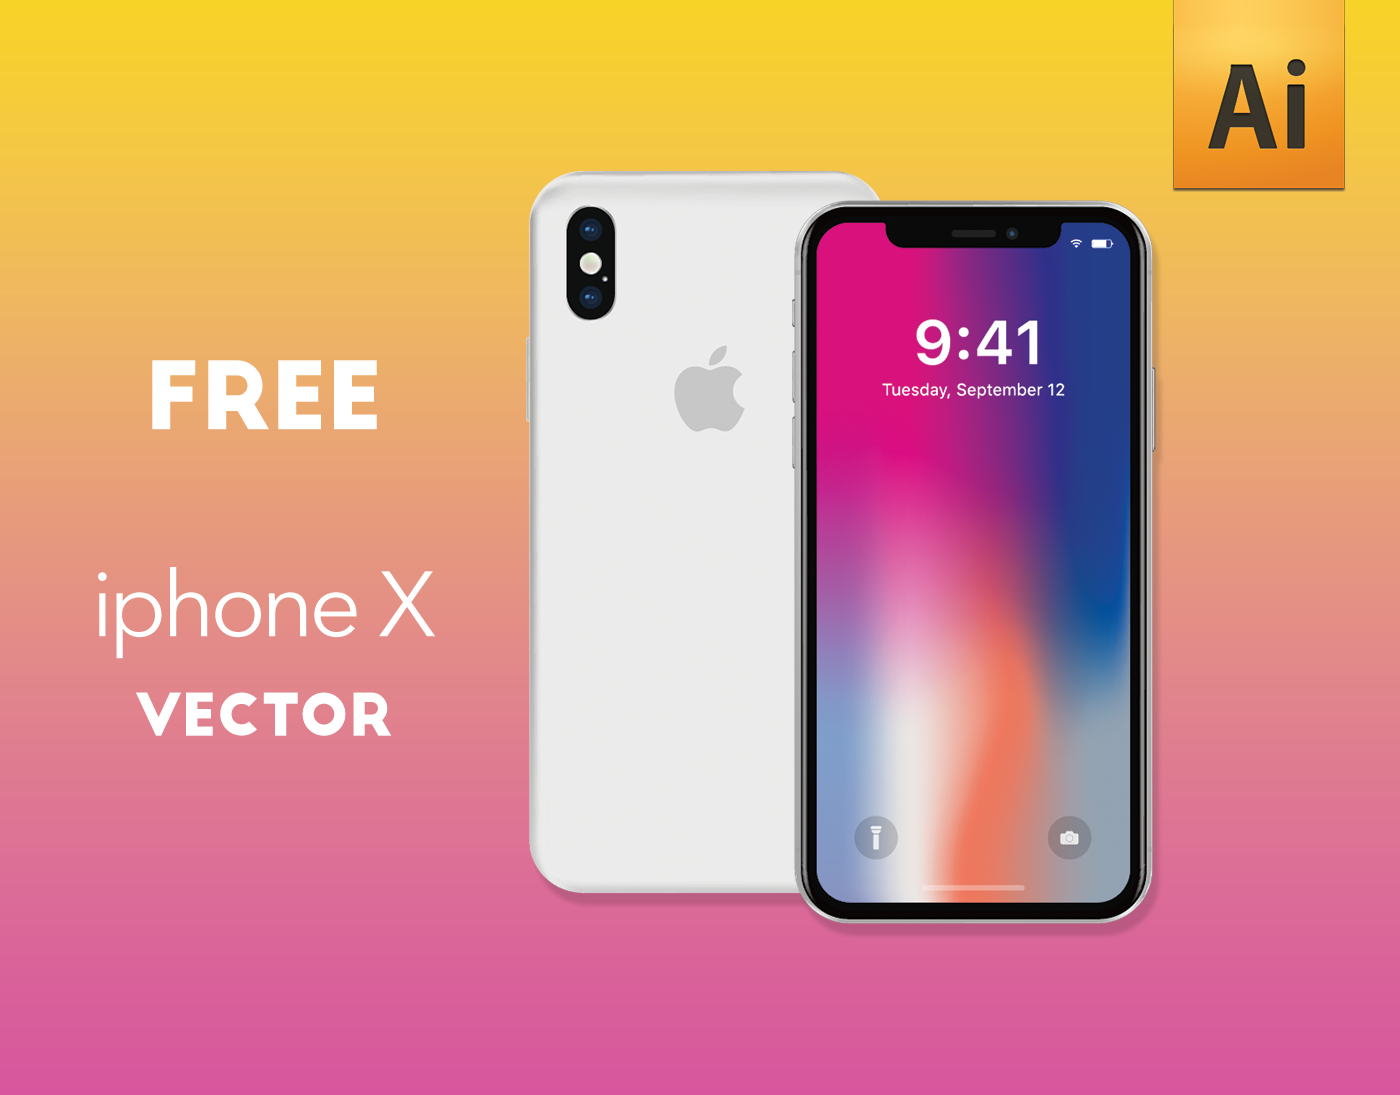 iphone x vector free ai on behance